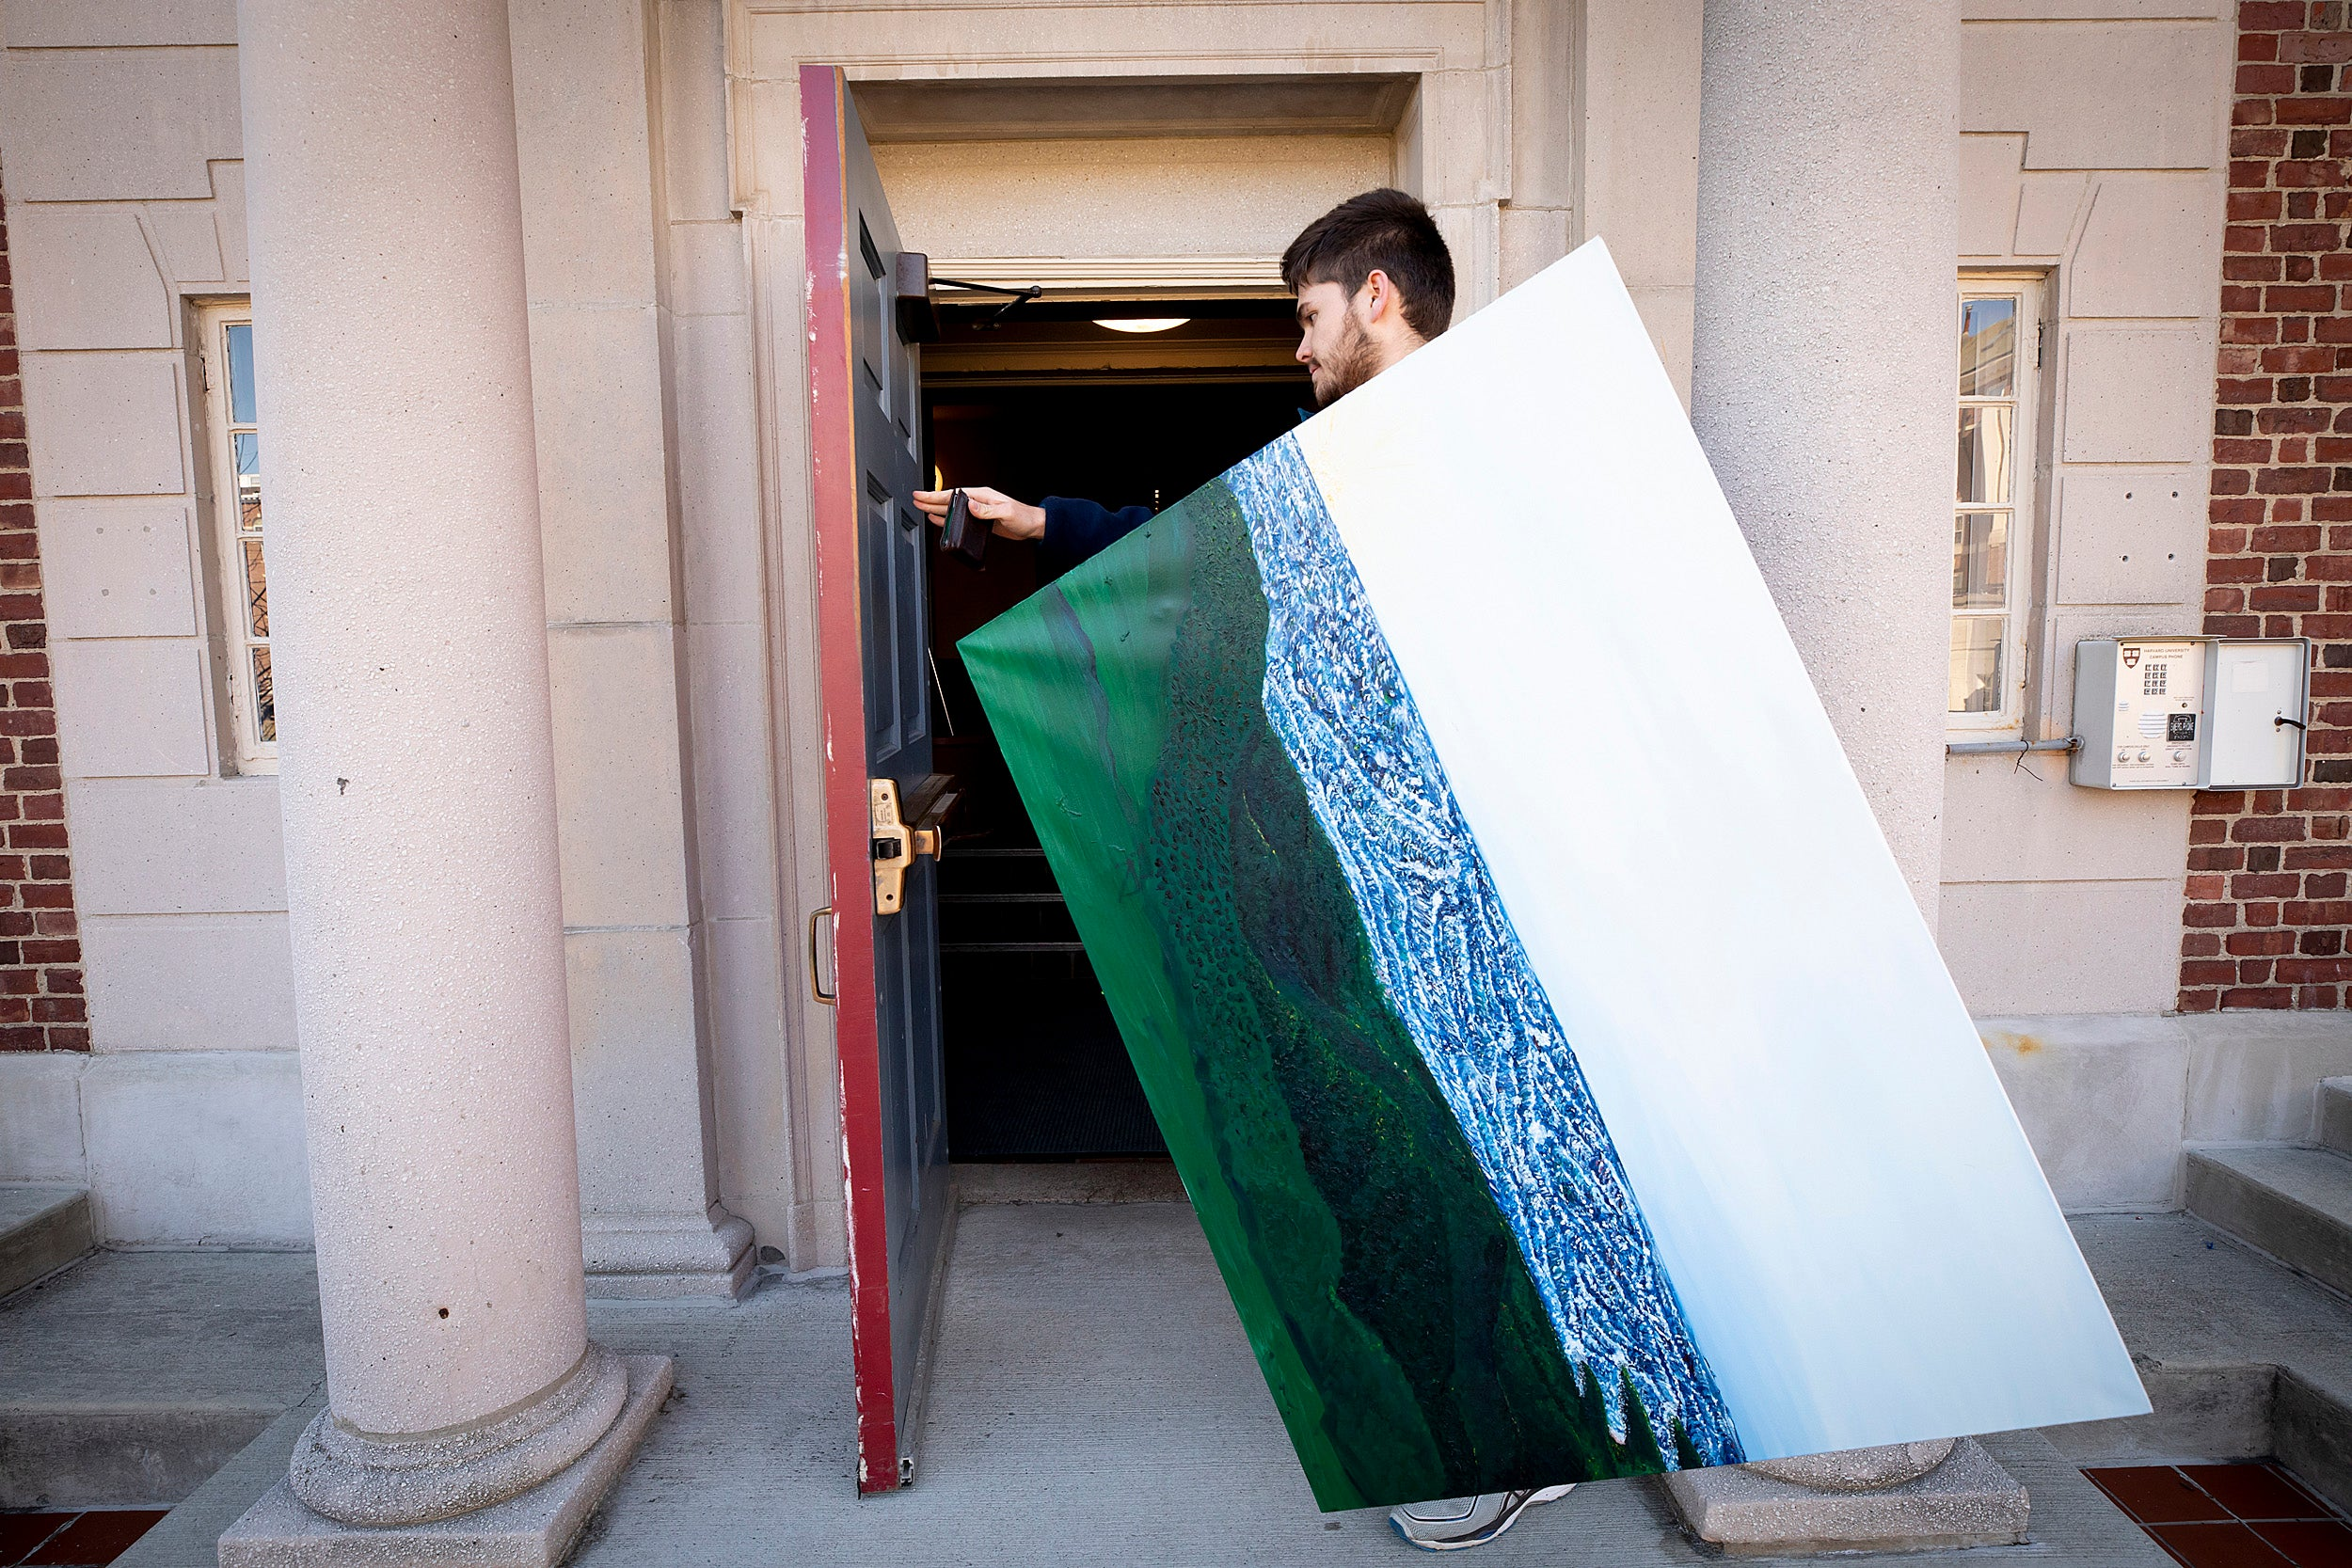 Rodrigo Cordova carries his painting.